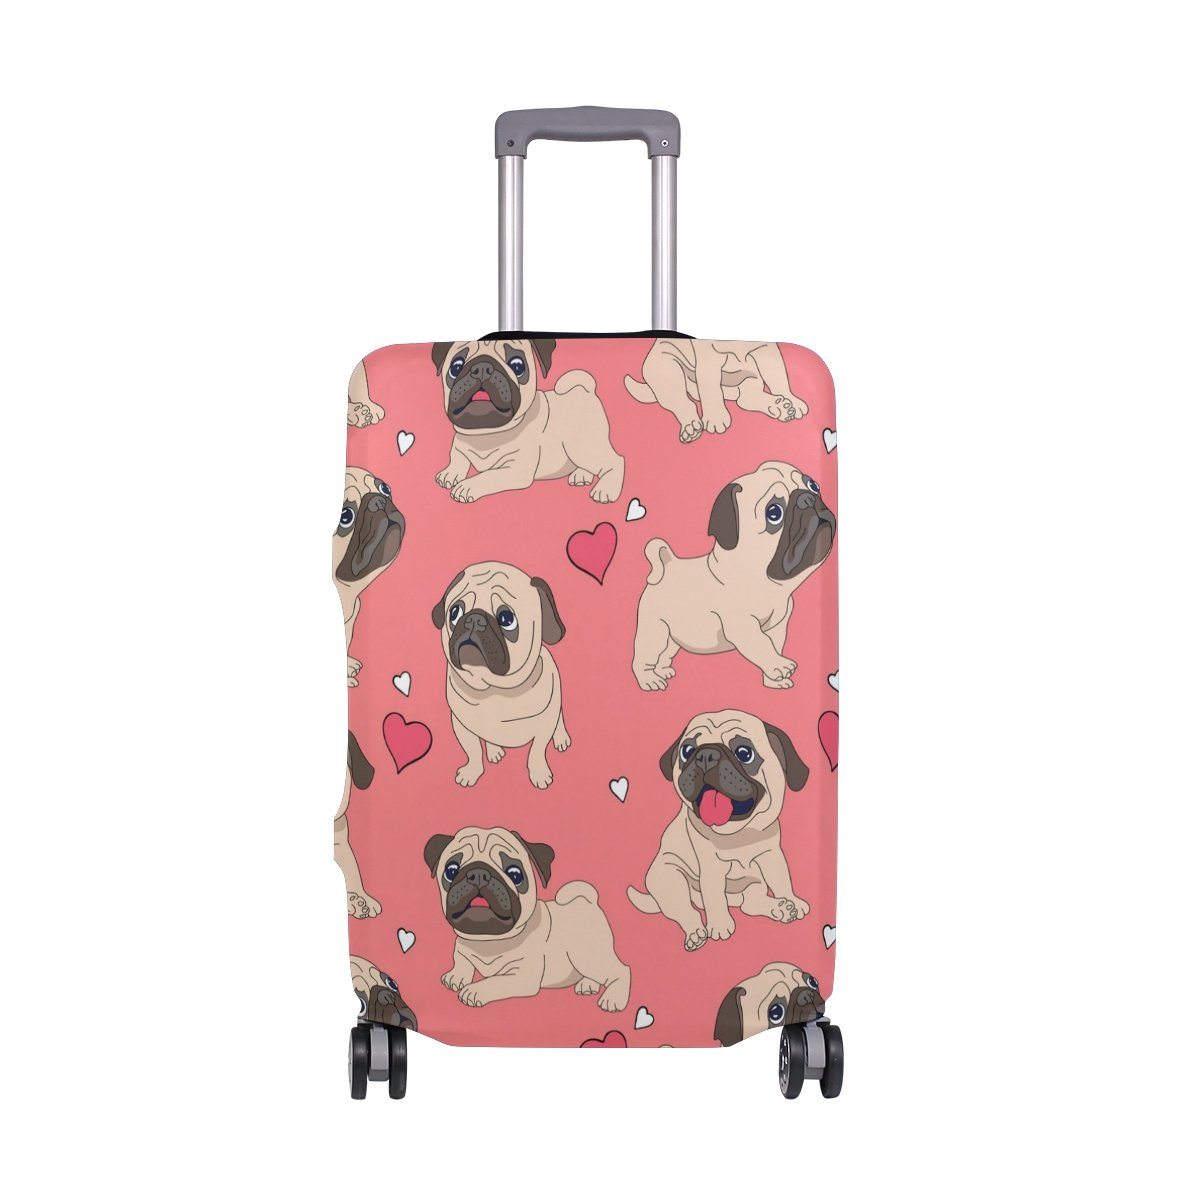 Cute Dog Puppy Love Heart Suitcase Luggage Cover Protector for Travel Kids Men Women by ALAZA (Image #7)